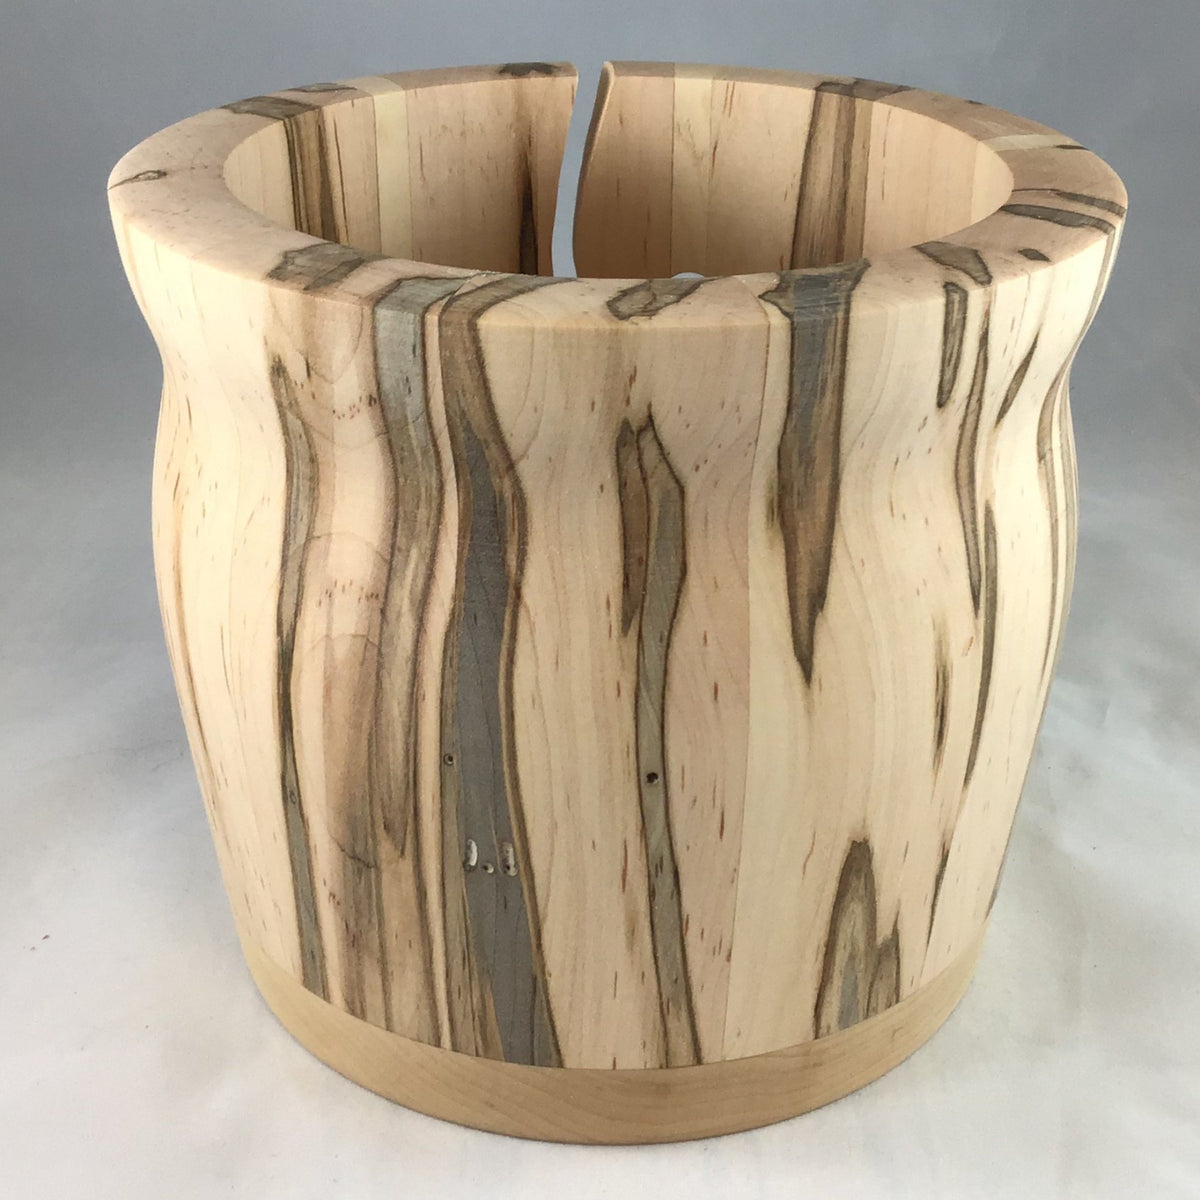 A wooden yarn bowl made from Ambrosia Ambrosia Maple wood against a white backdrop